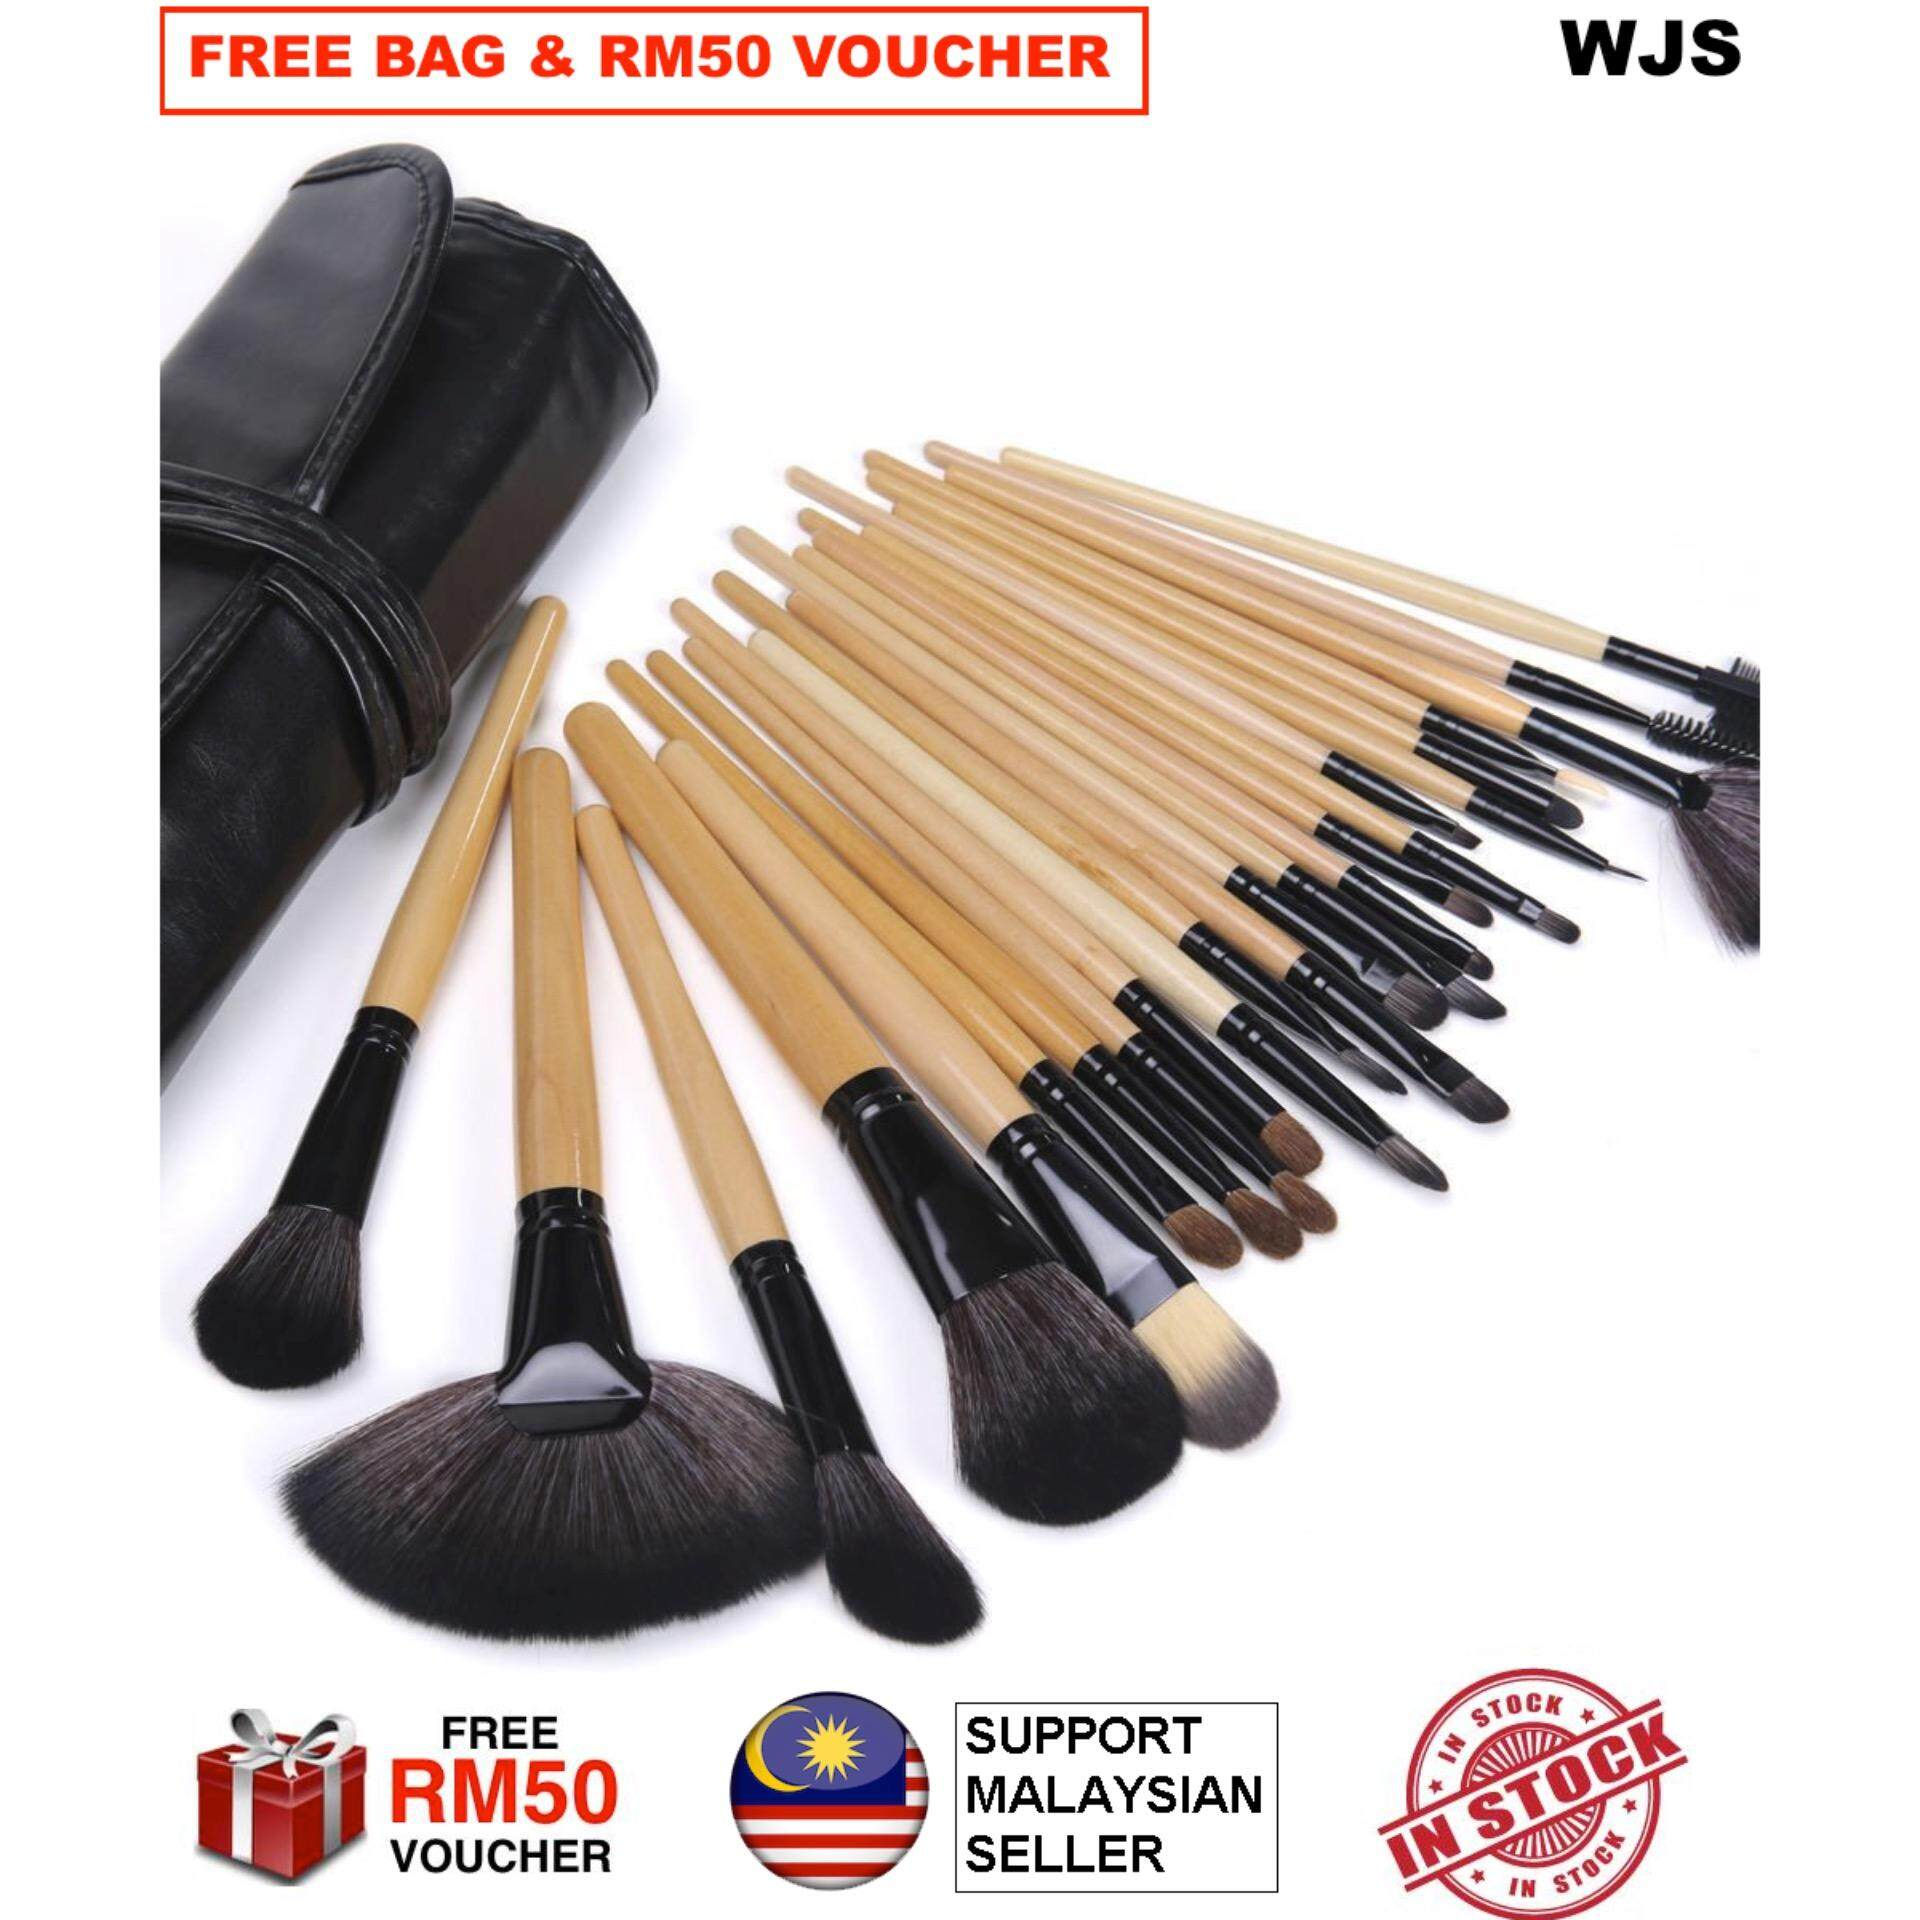 (HALAL BRUSH) WJS HALAL 24 pcs 24pcs High Quality Professional Cosmetic Makeup Brush Set With Pouch Bag BROWN [FREE RM50 VOUCHER]